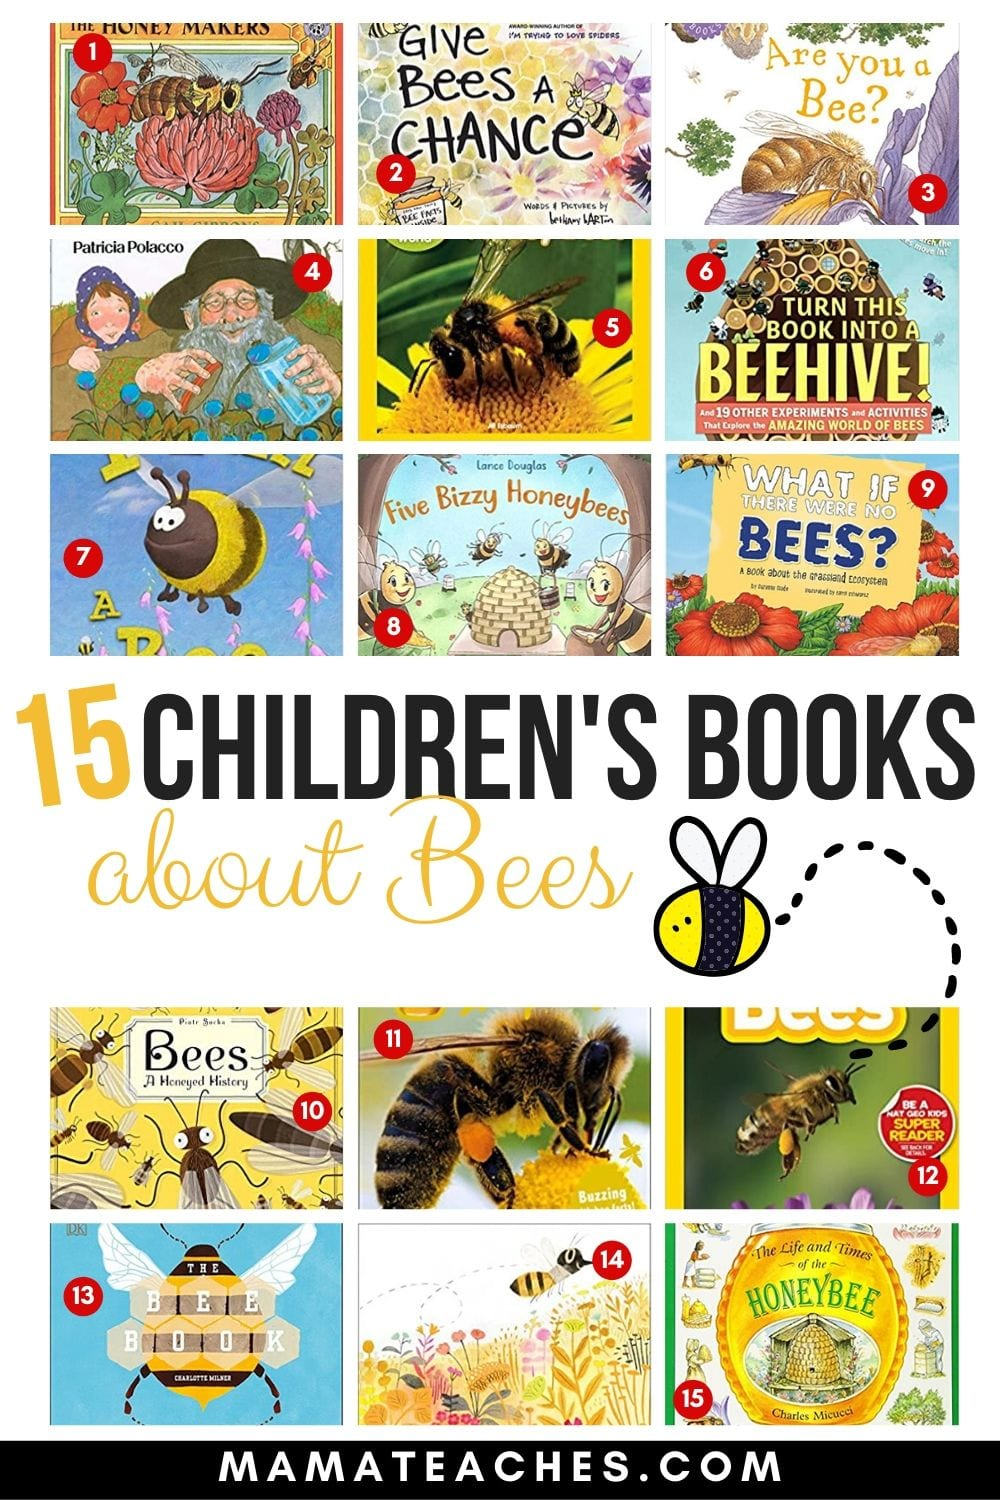 15 Children's Books About Bees! Teach children about the most amazing pollinators with these kid-friendly picture books filled with facts! MamaTeaches.com